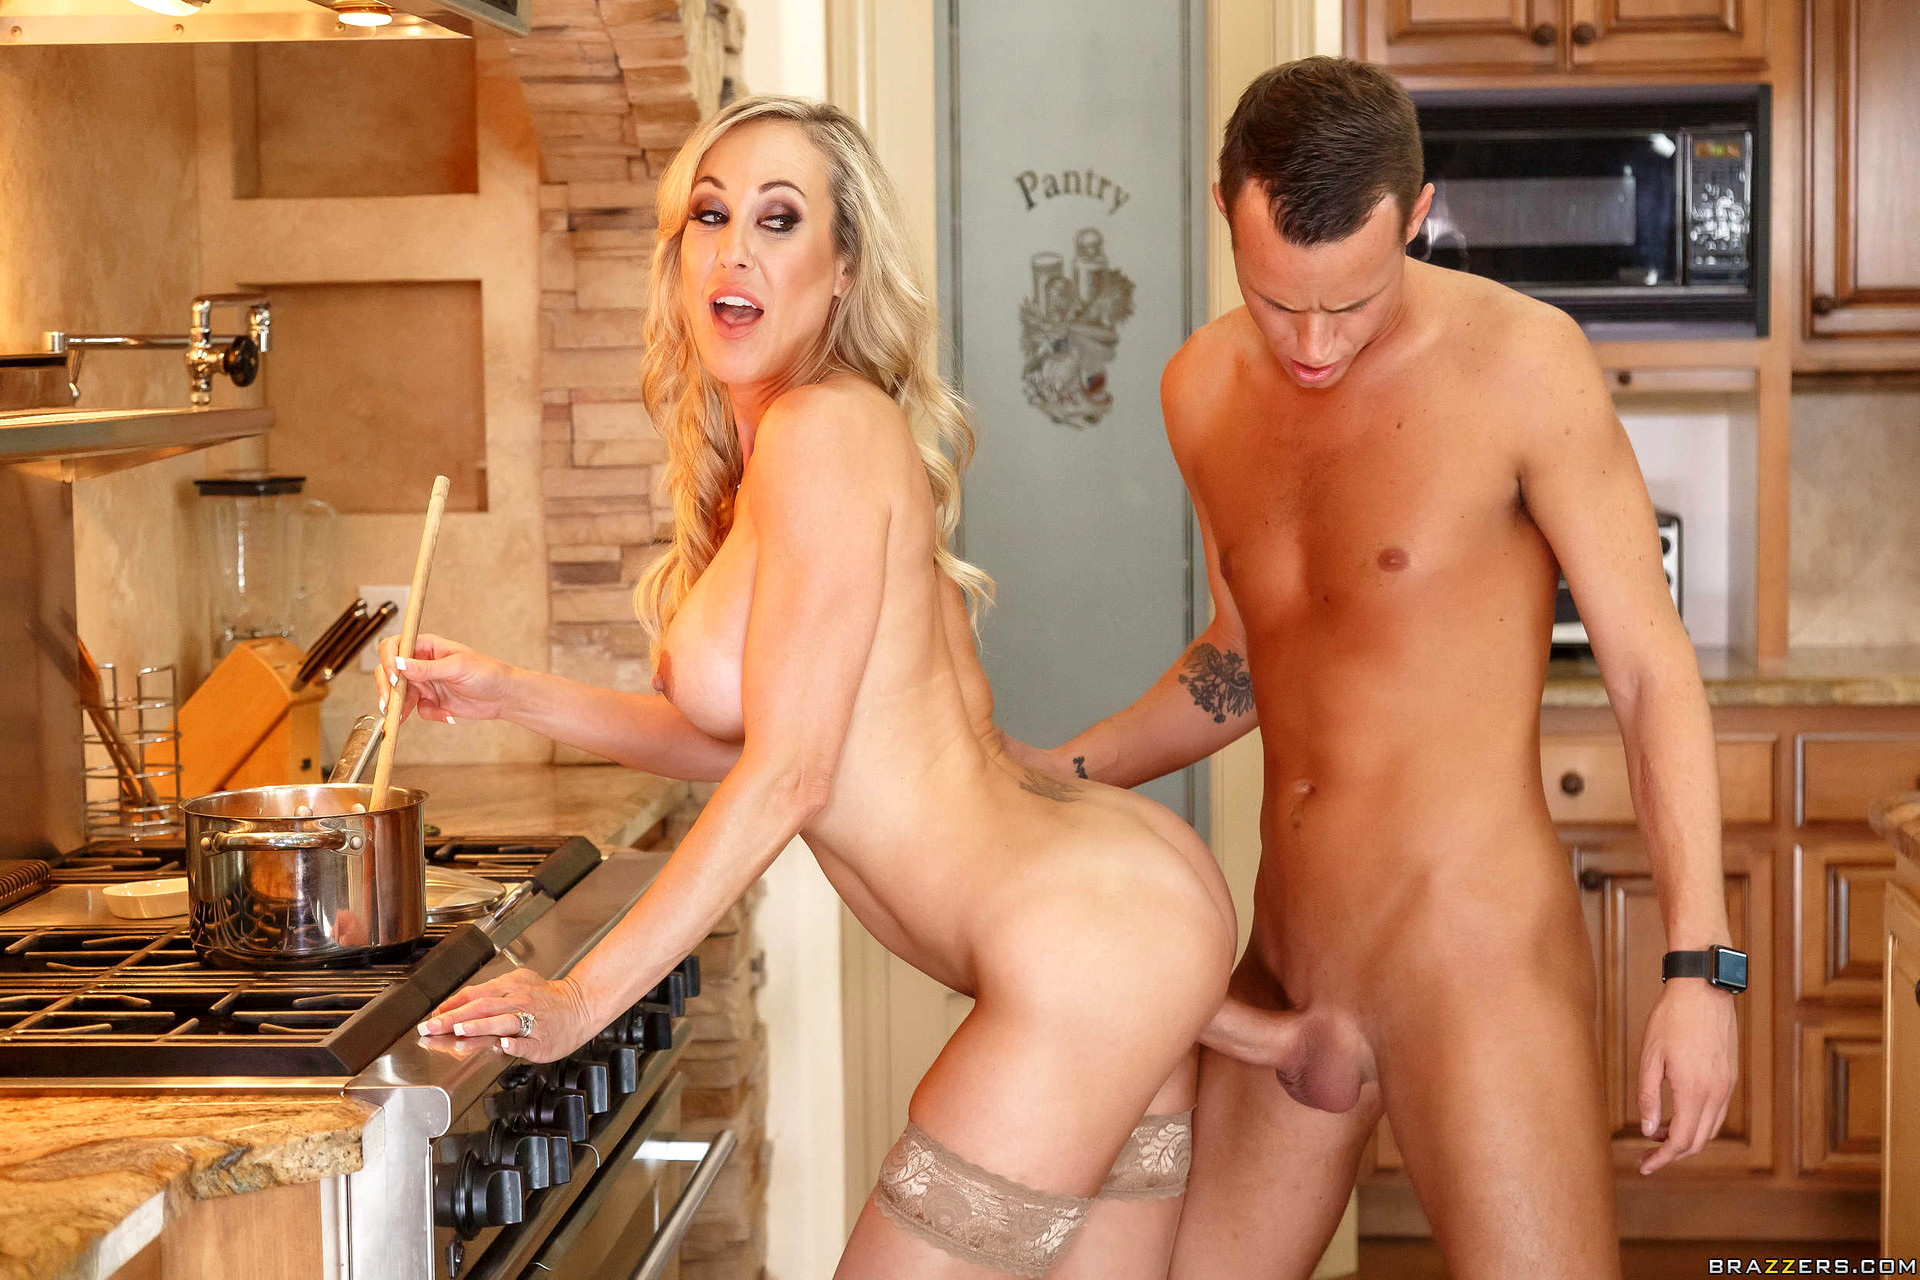 cooks milf personals 1 year ago 08:57 vporn small cock, mature, milf, erotic, nipples, fetish, big cock waiting at a motel for a date 1 week ago 06:28 xhamster lingerie , shemale , mature , big tits , solo , hotel , webcam.